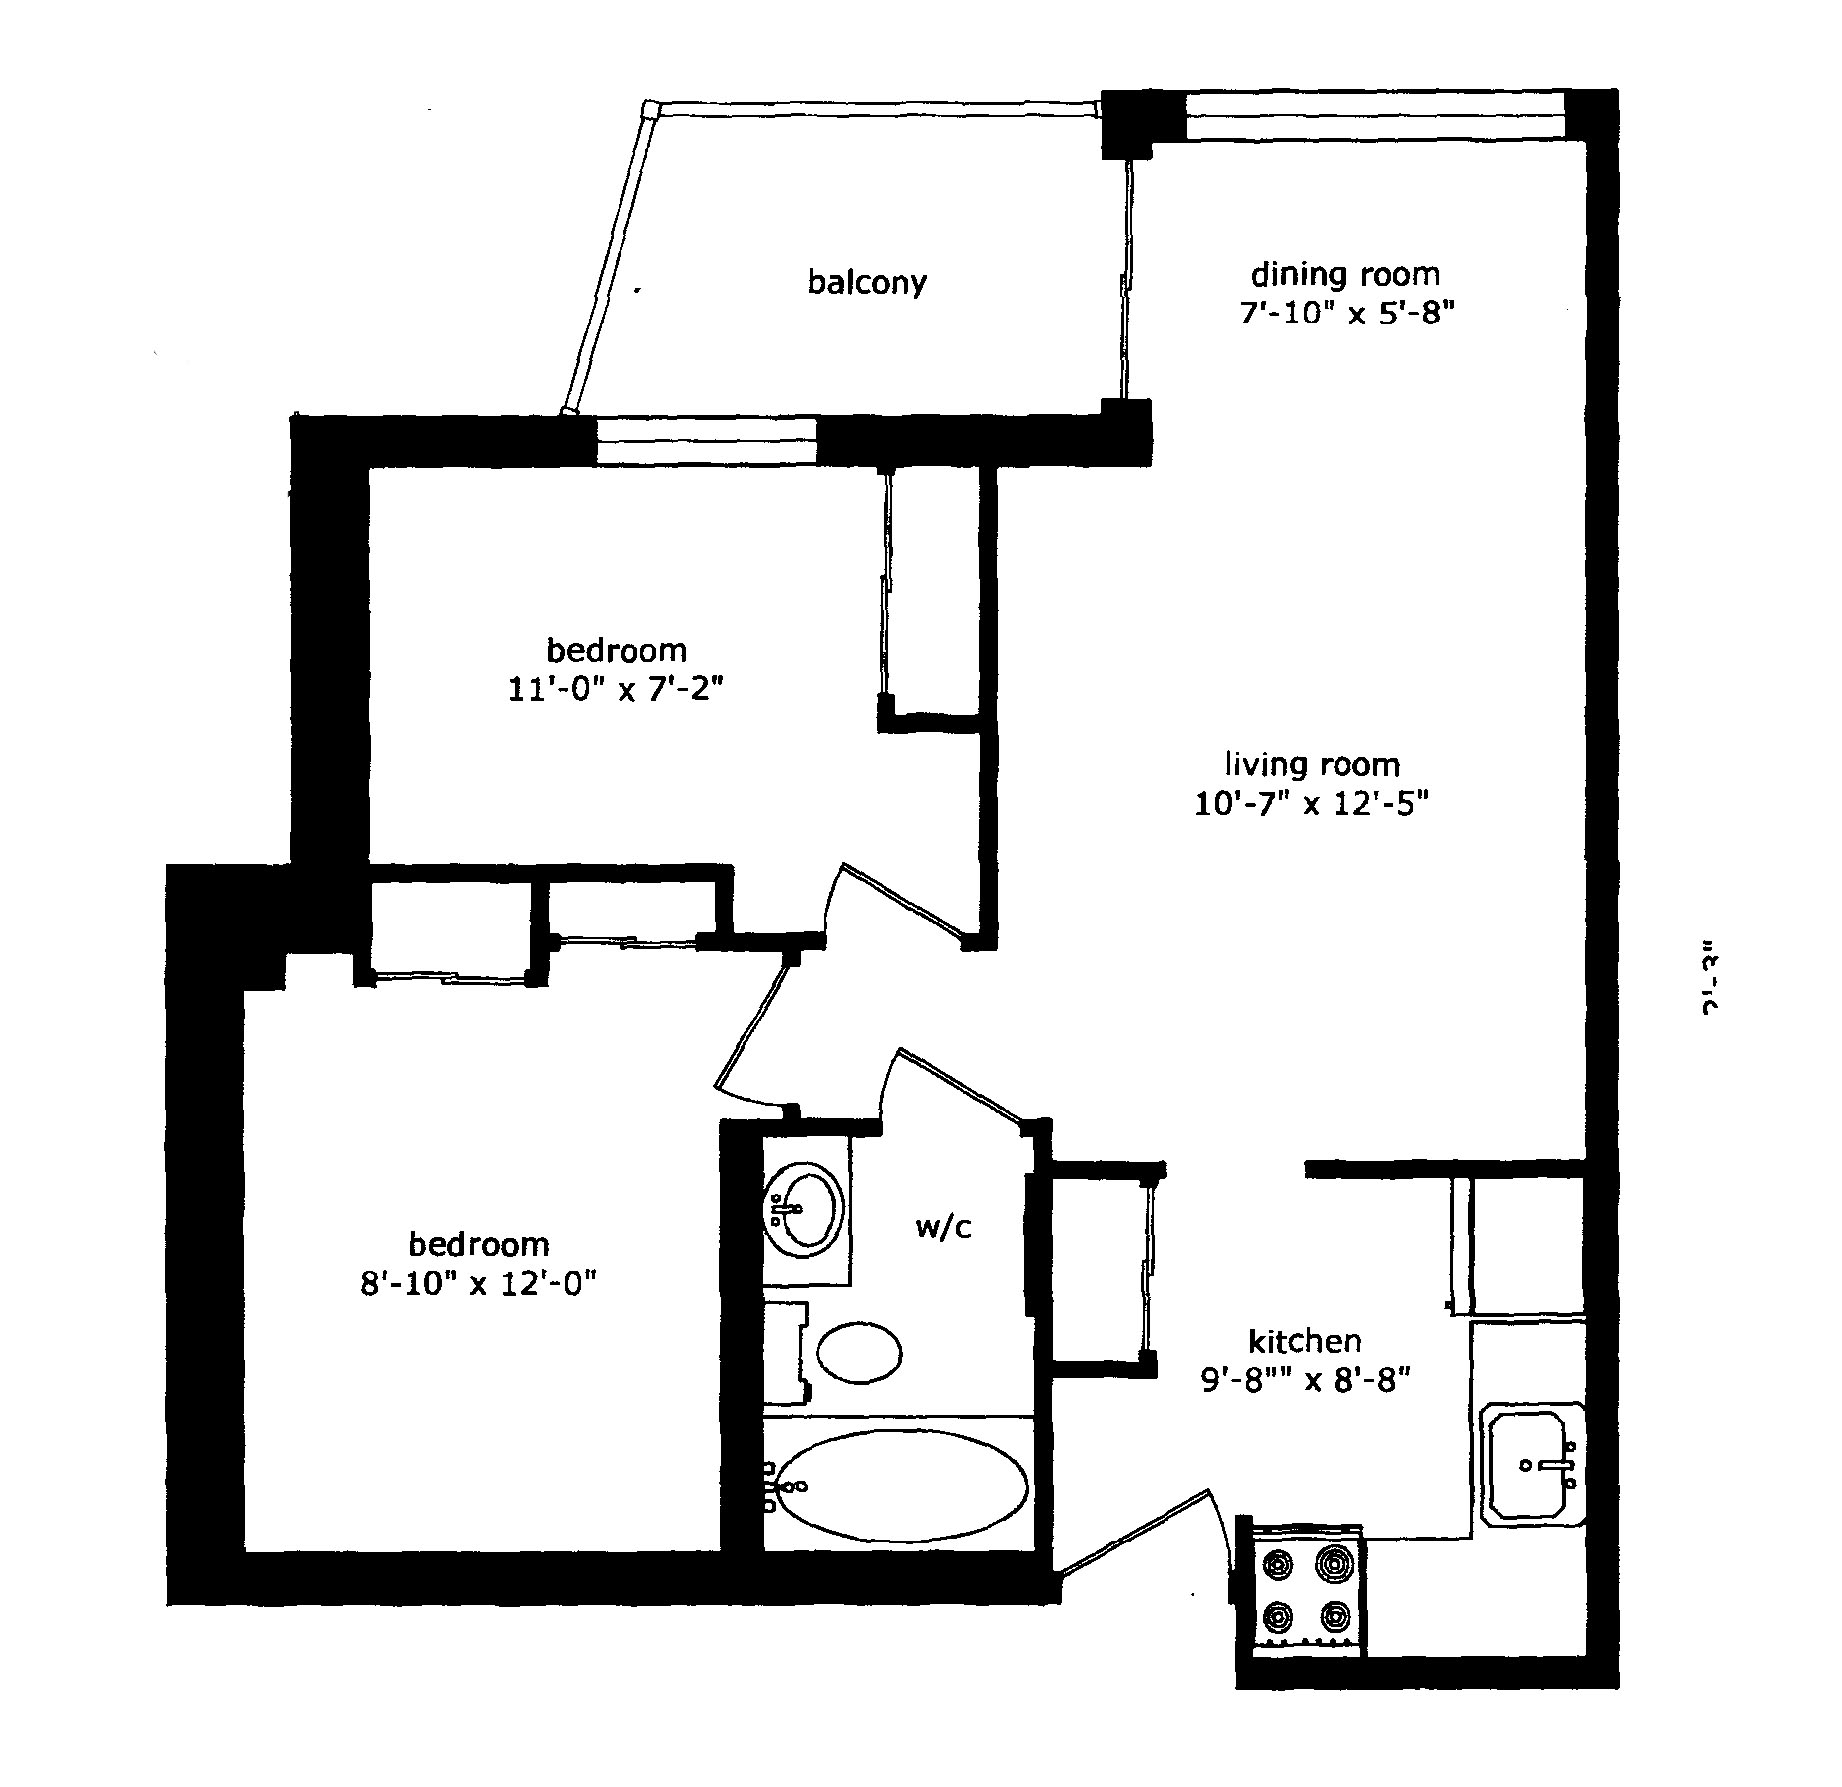 Regency Place Apartments: Floor Plans Of Regency Place Apartments In Whitby, ON